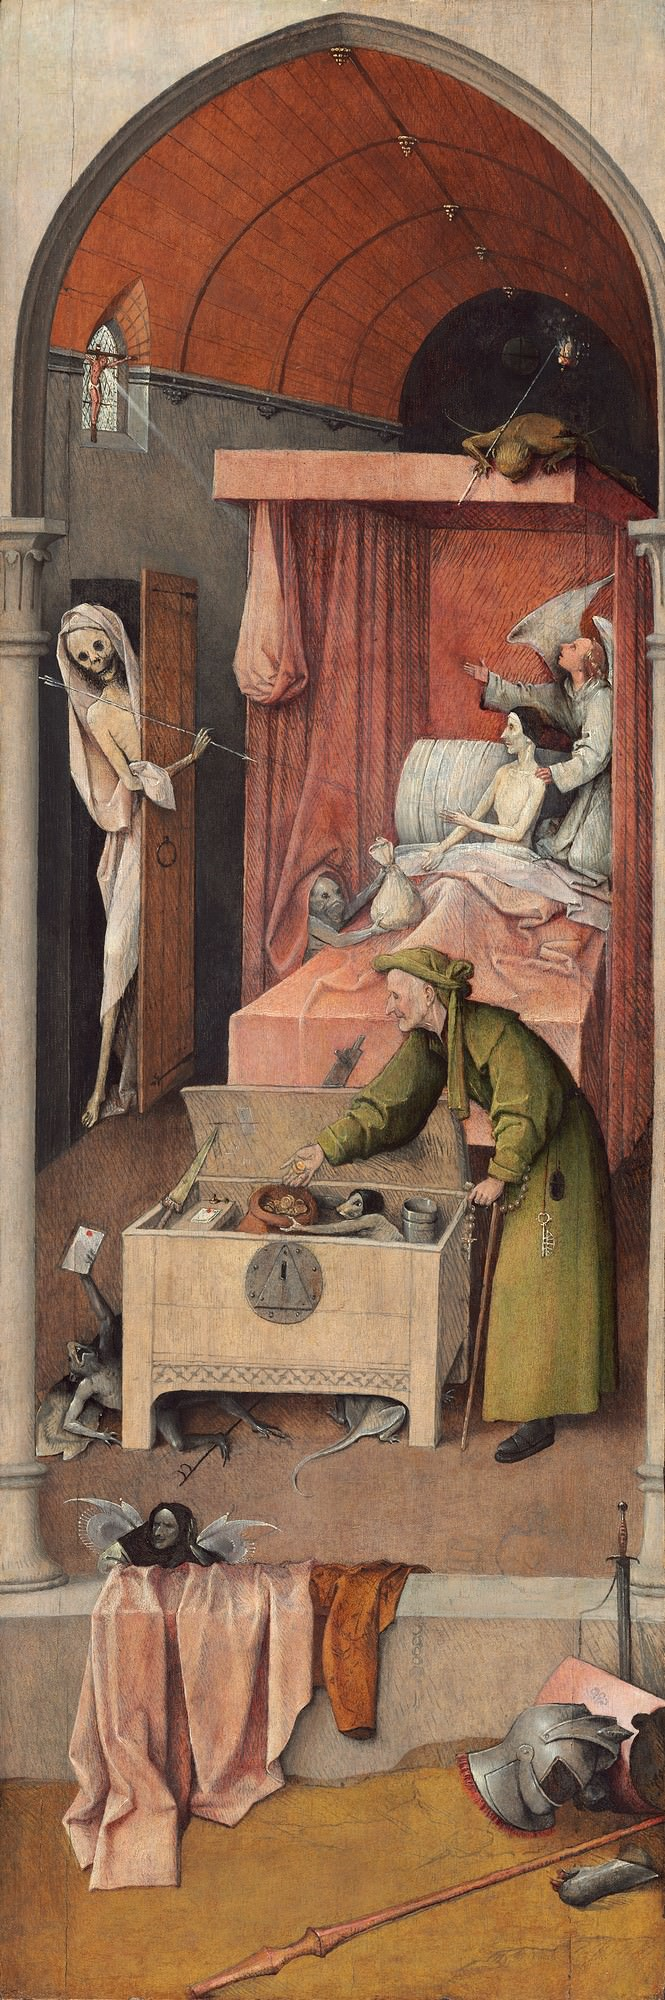 Death and the Miser, 1485/1490, Hieronymus Bosch (Netherlandish, c. 1450 - 1516 ). Samuel H. Kress Collection.